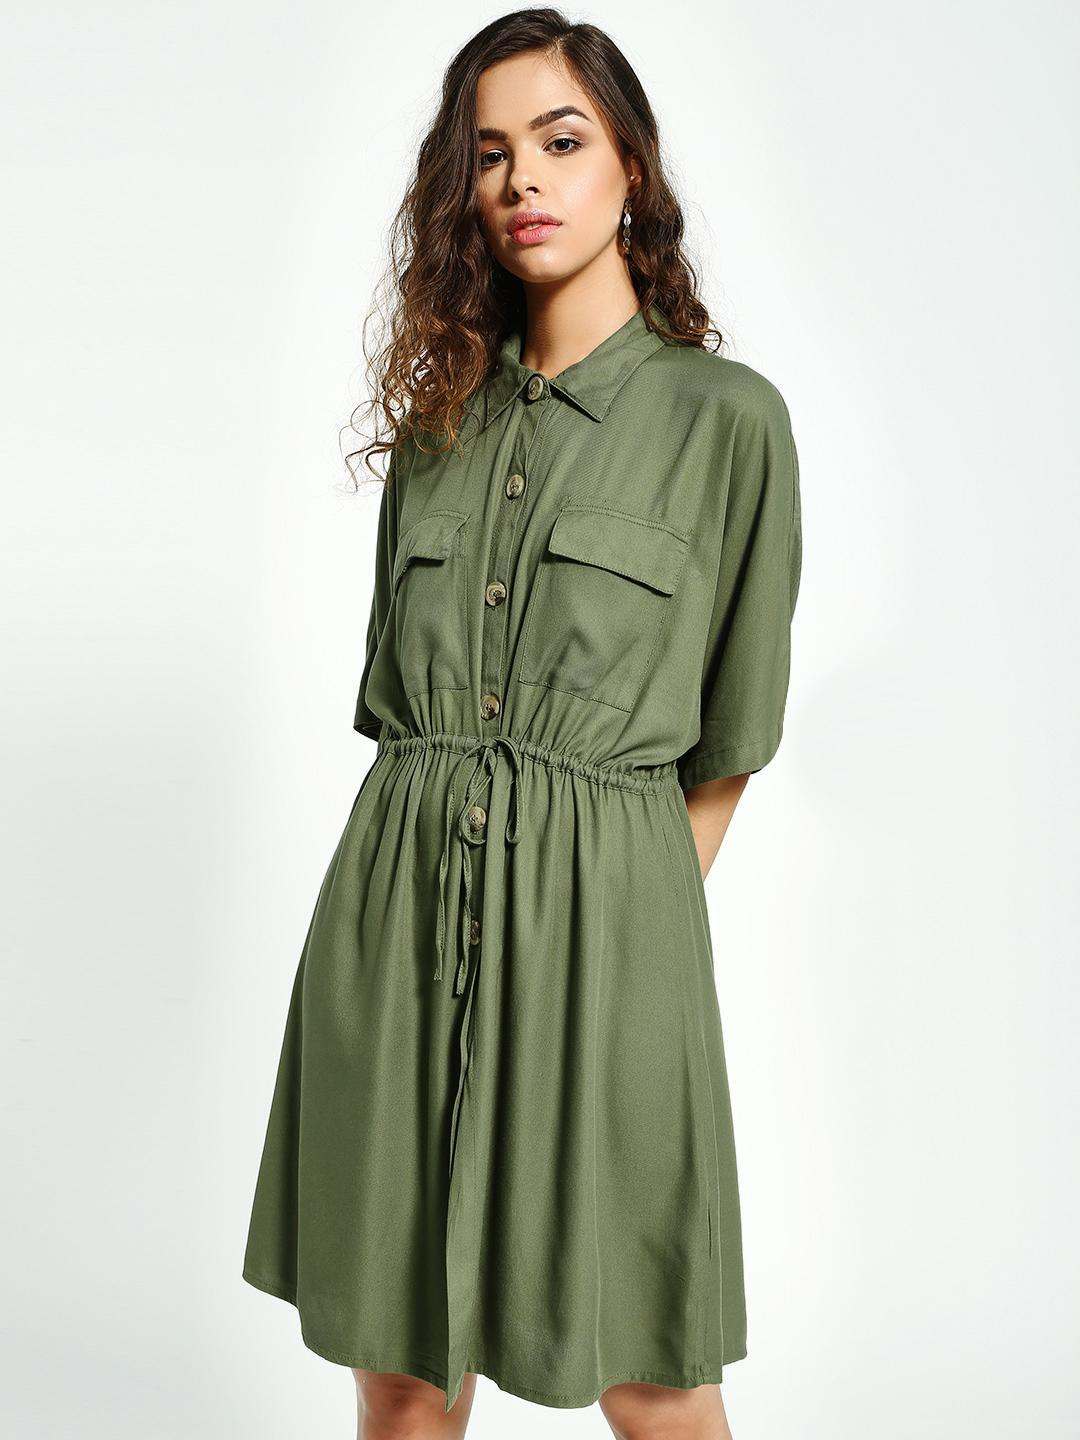 Sbuys Olive Button-Down Tie-Knot Shirt Dress 1